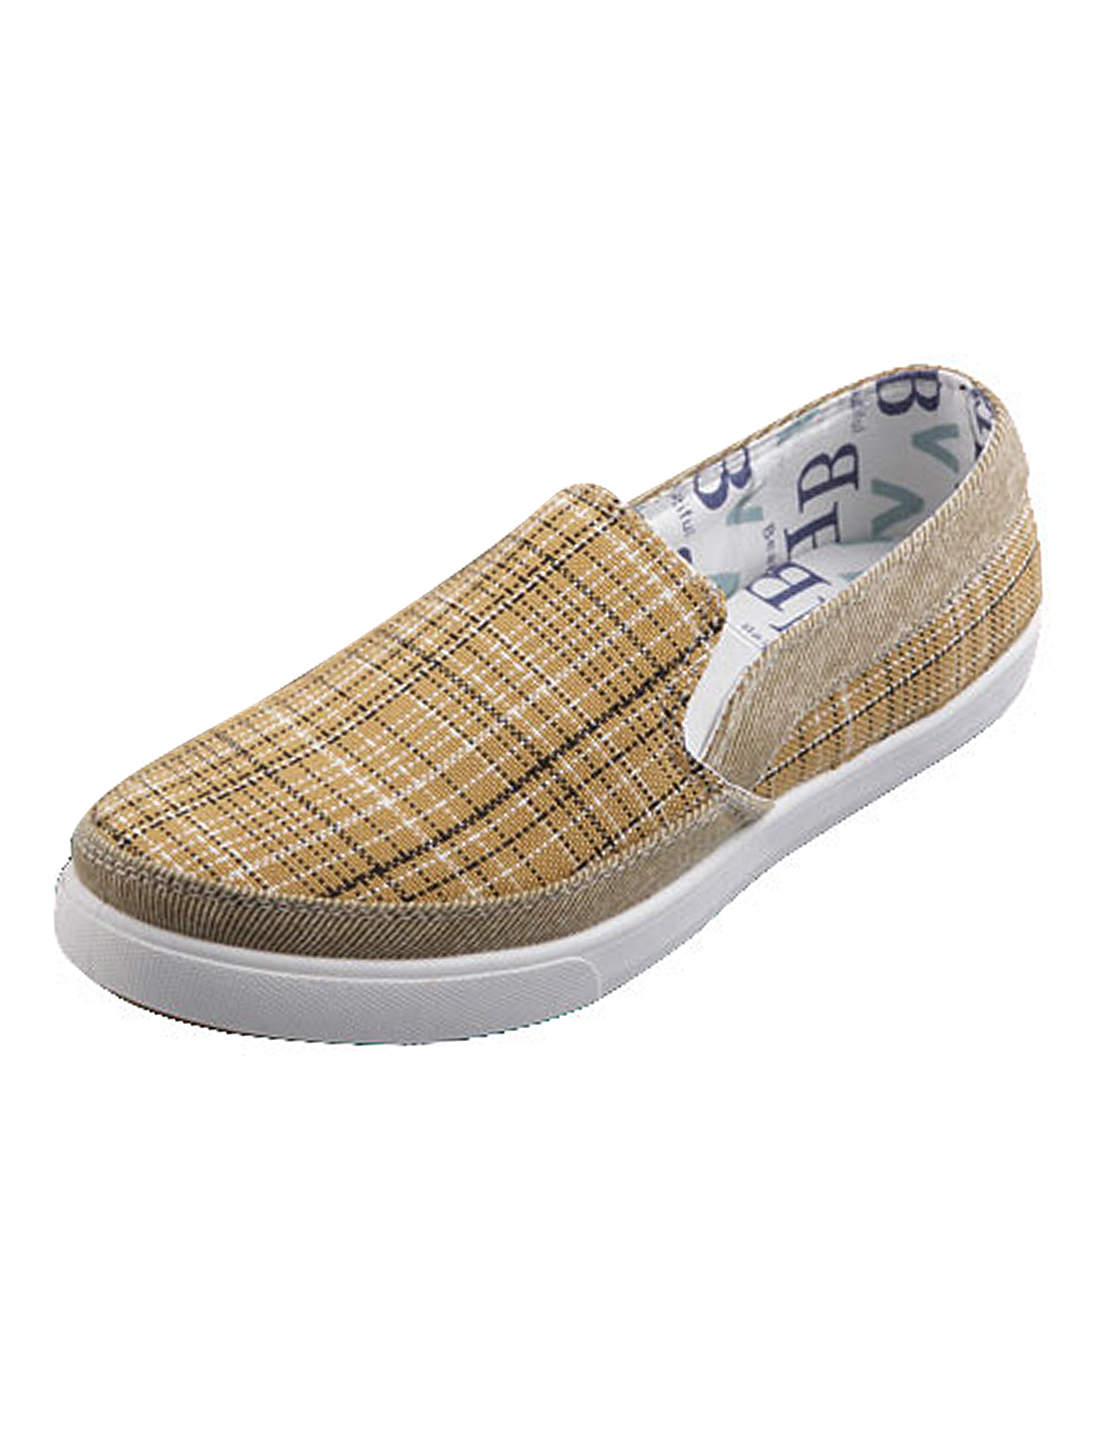 Men Plaids Pattern Canvas Slip On Casual Loafer Brown US Size 11